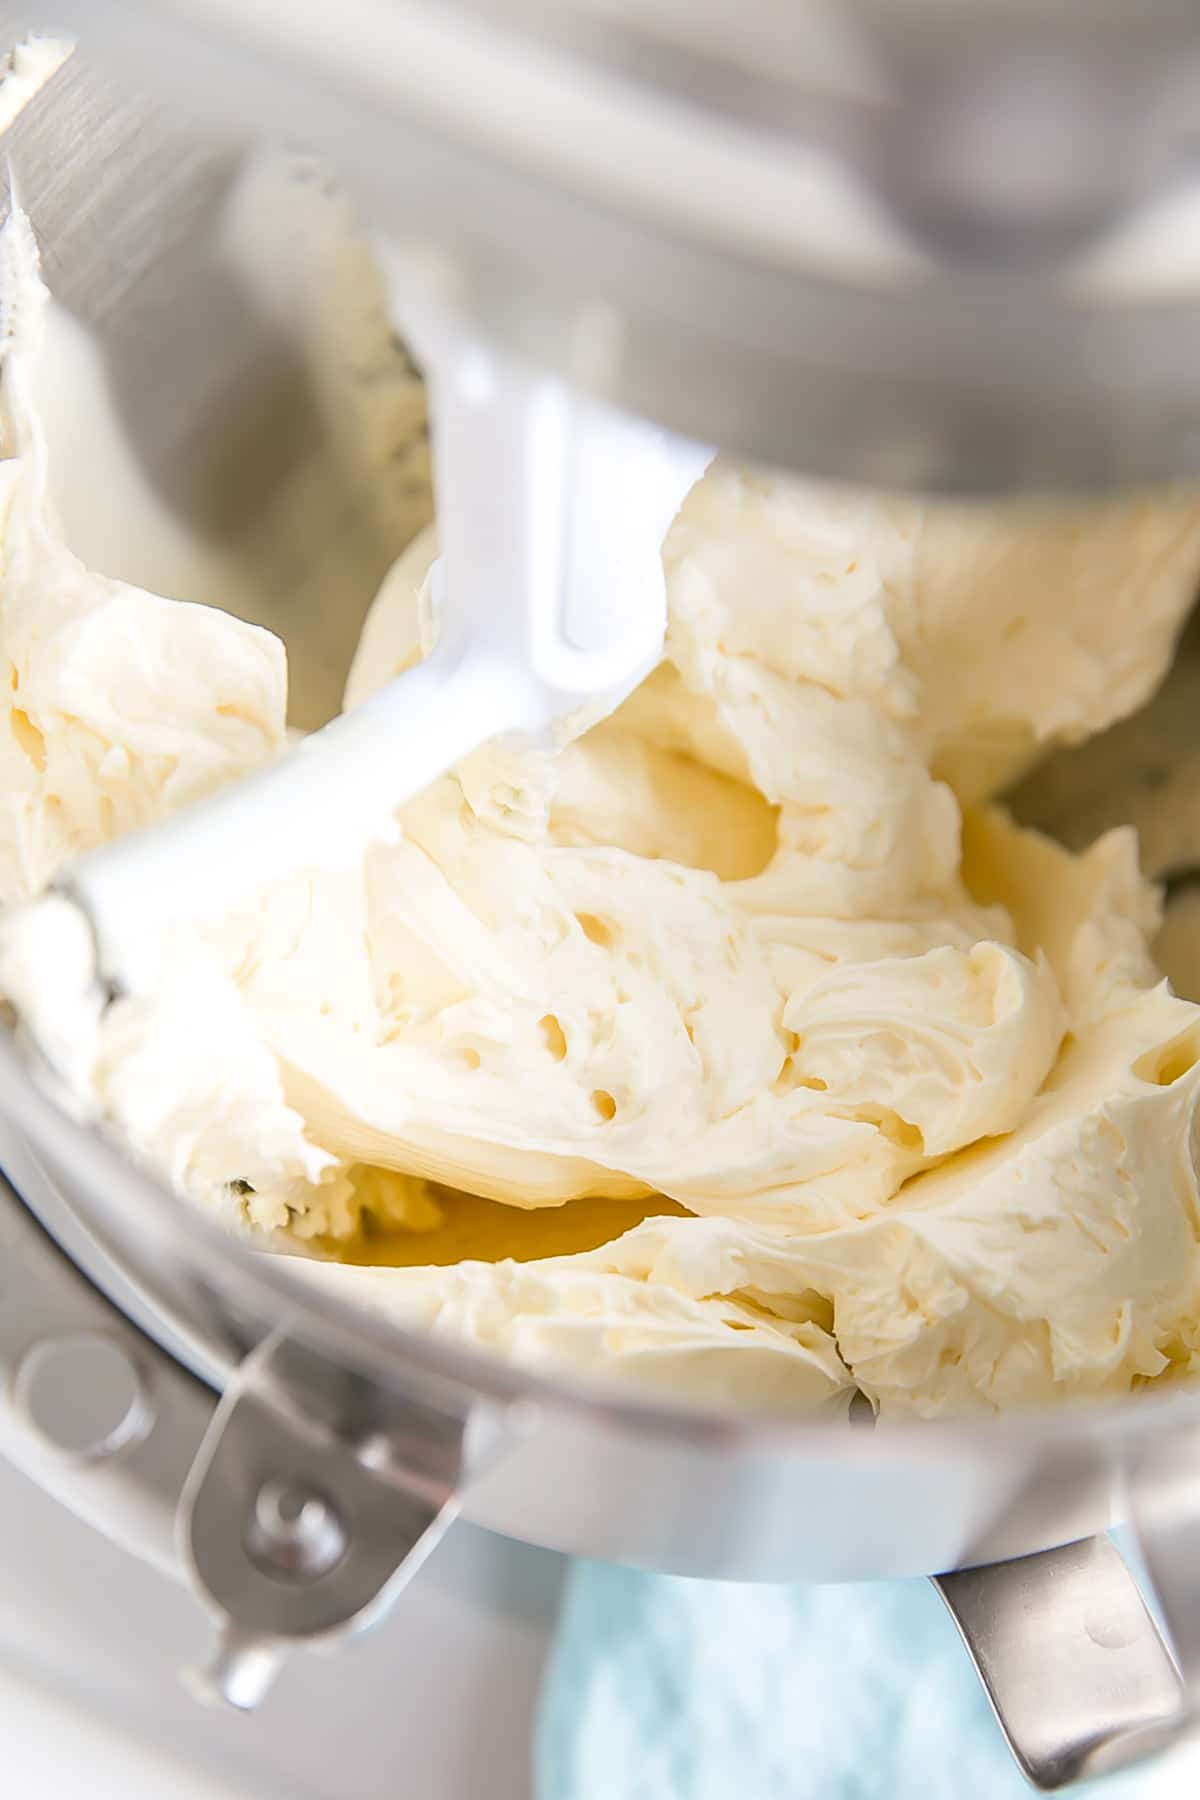 Whipped butter shown inside the stand mixer.